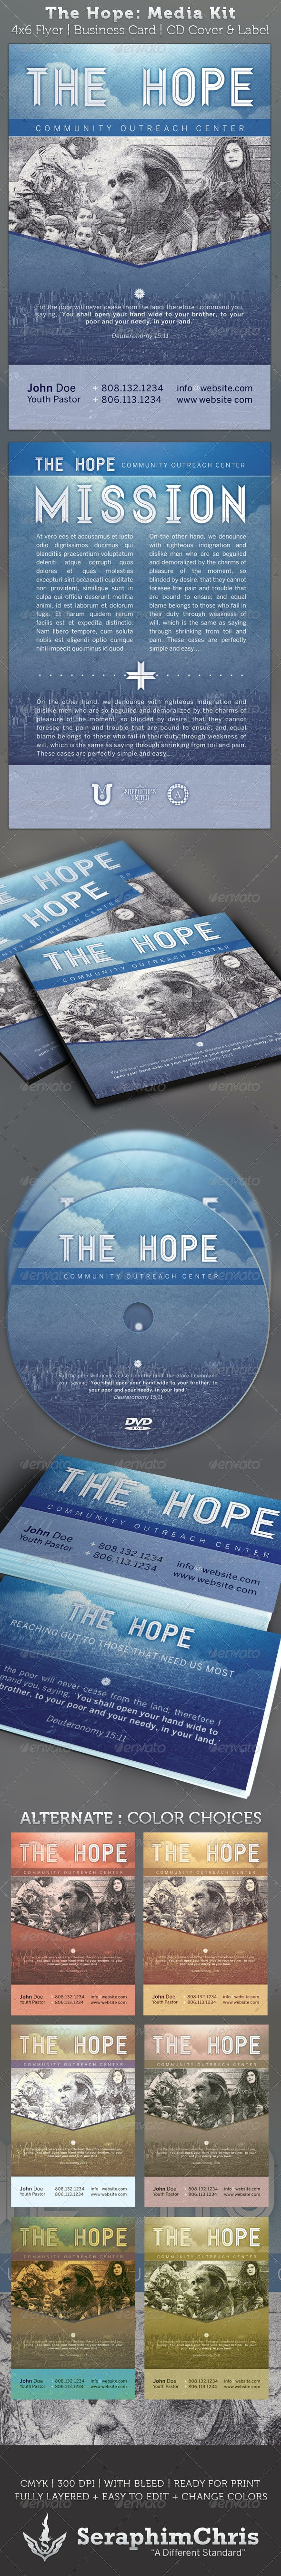 The Hope Church Charity - Media Kit Package - Church Flyers